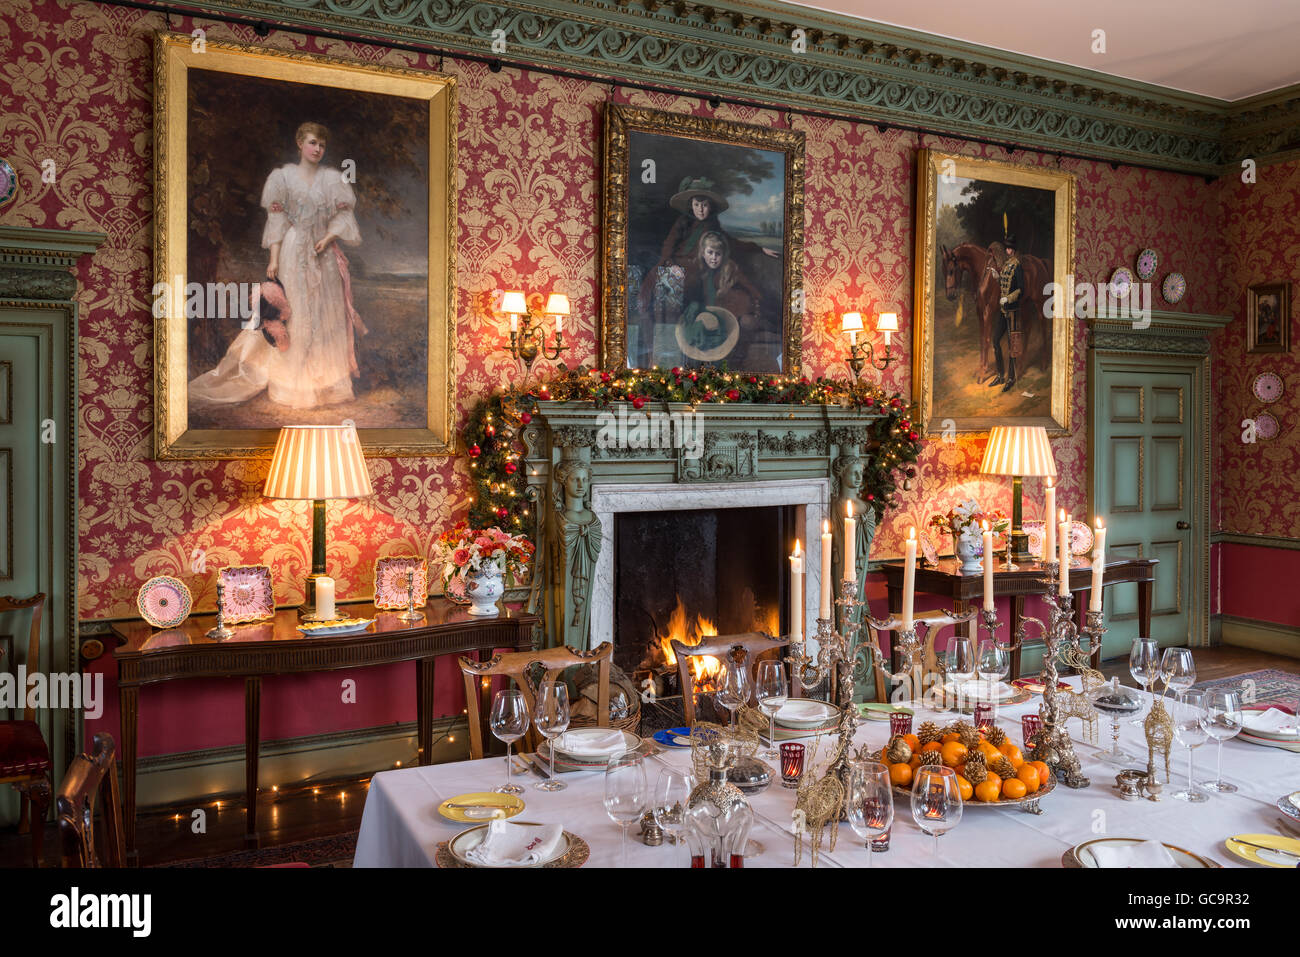 Grade I Listed Victorian Gothic Dining Room Set For Christmas Dinner With  Blazing Fire, Carlton Towers, East Riding